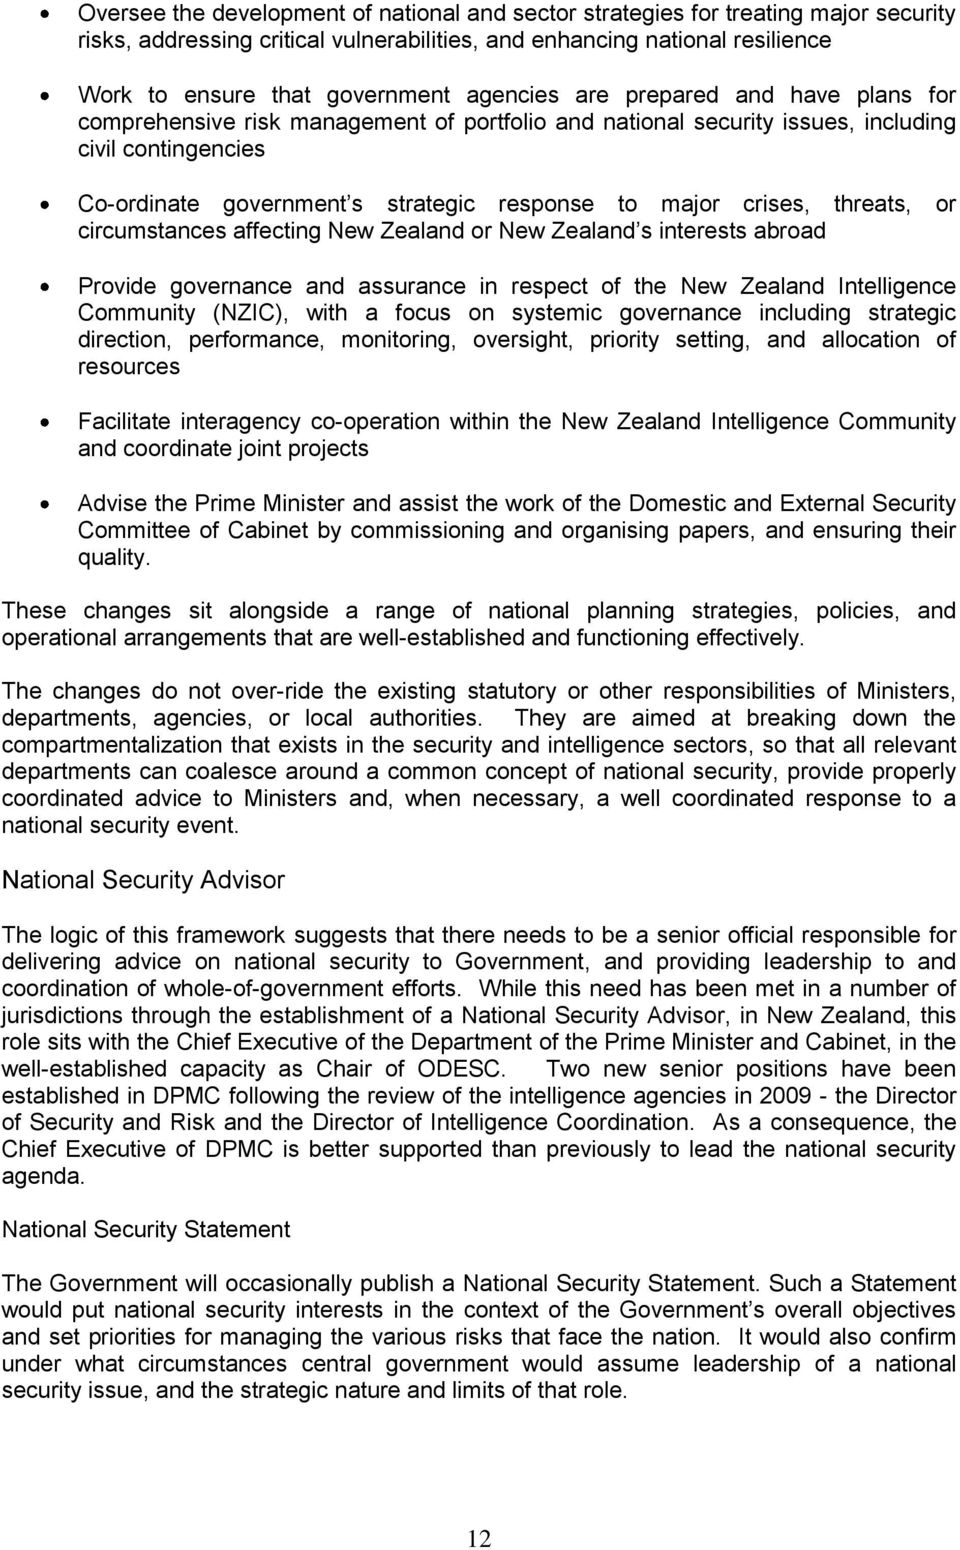 crises, threats, or circumstances affecting New Zealand or New Zealand s interests abroad Provide governance and assurance in respect of the New Zealand Intelligence Community (NZIC), with a focus on